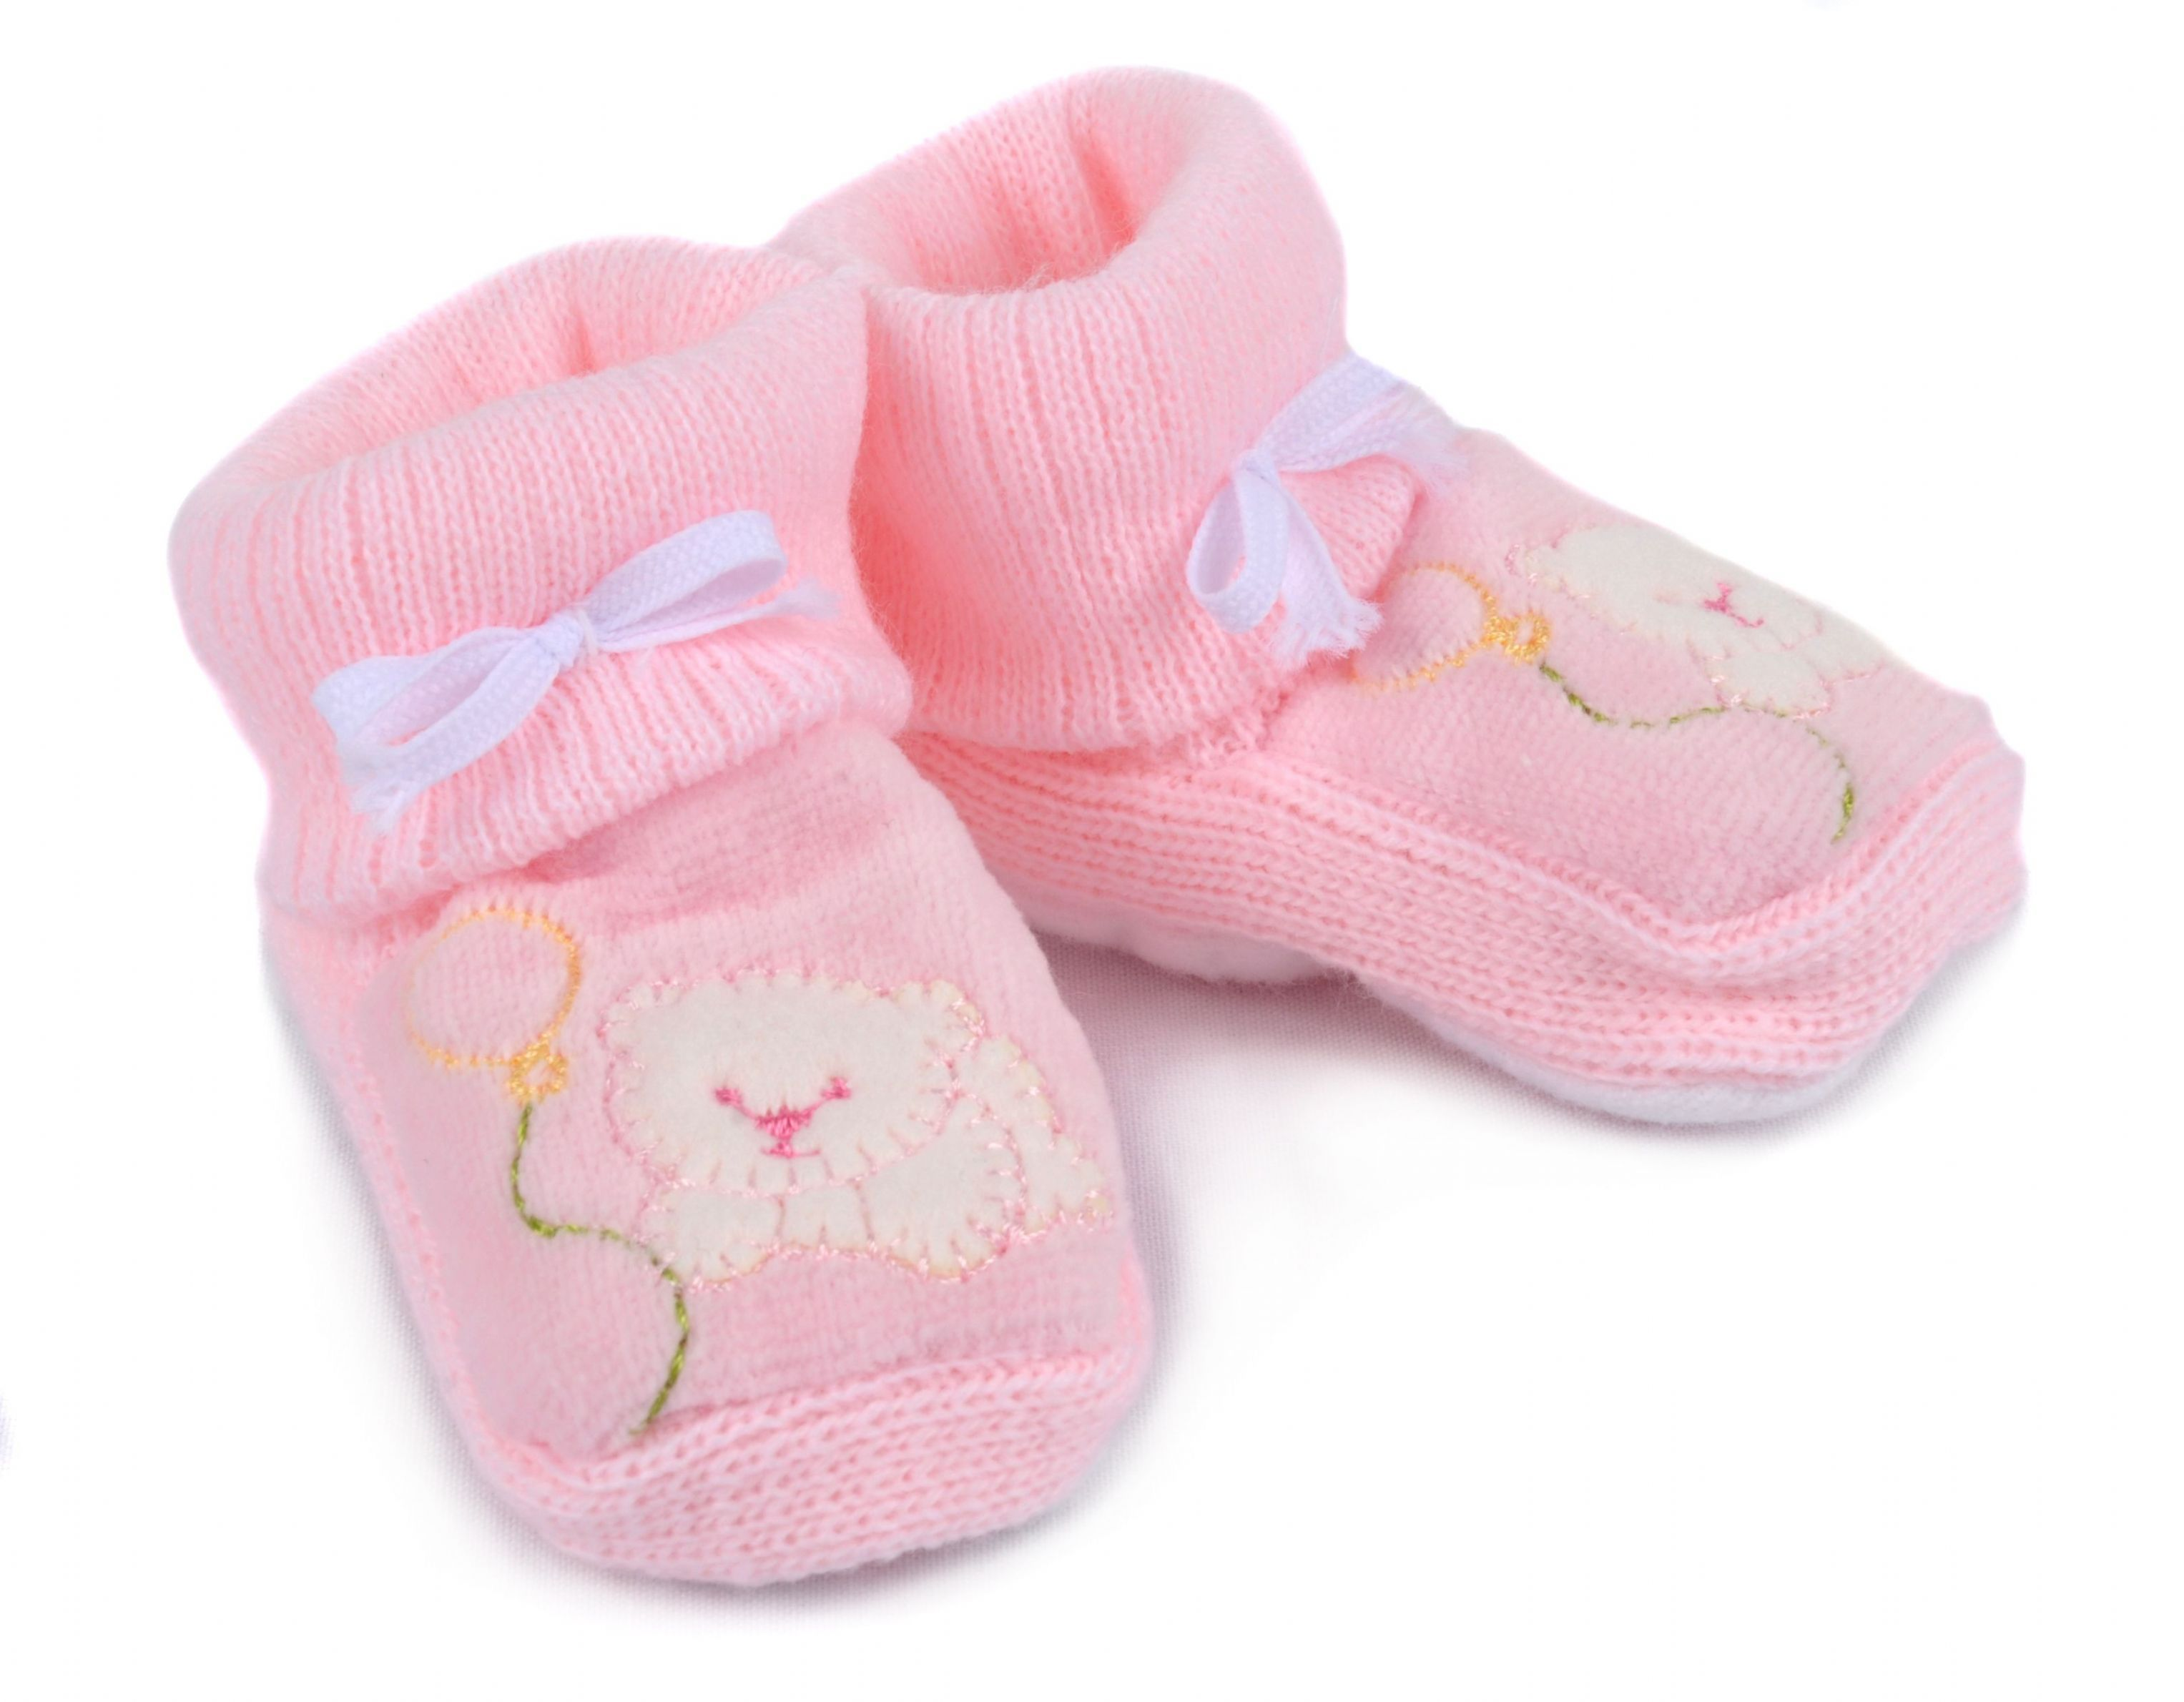 pink baby booties | Baby Booties in Pink | Places to Visit ...